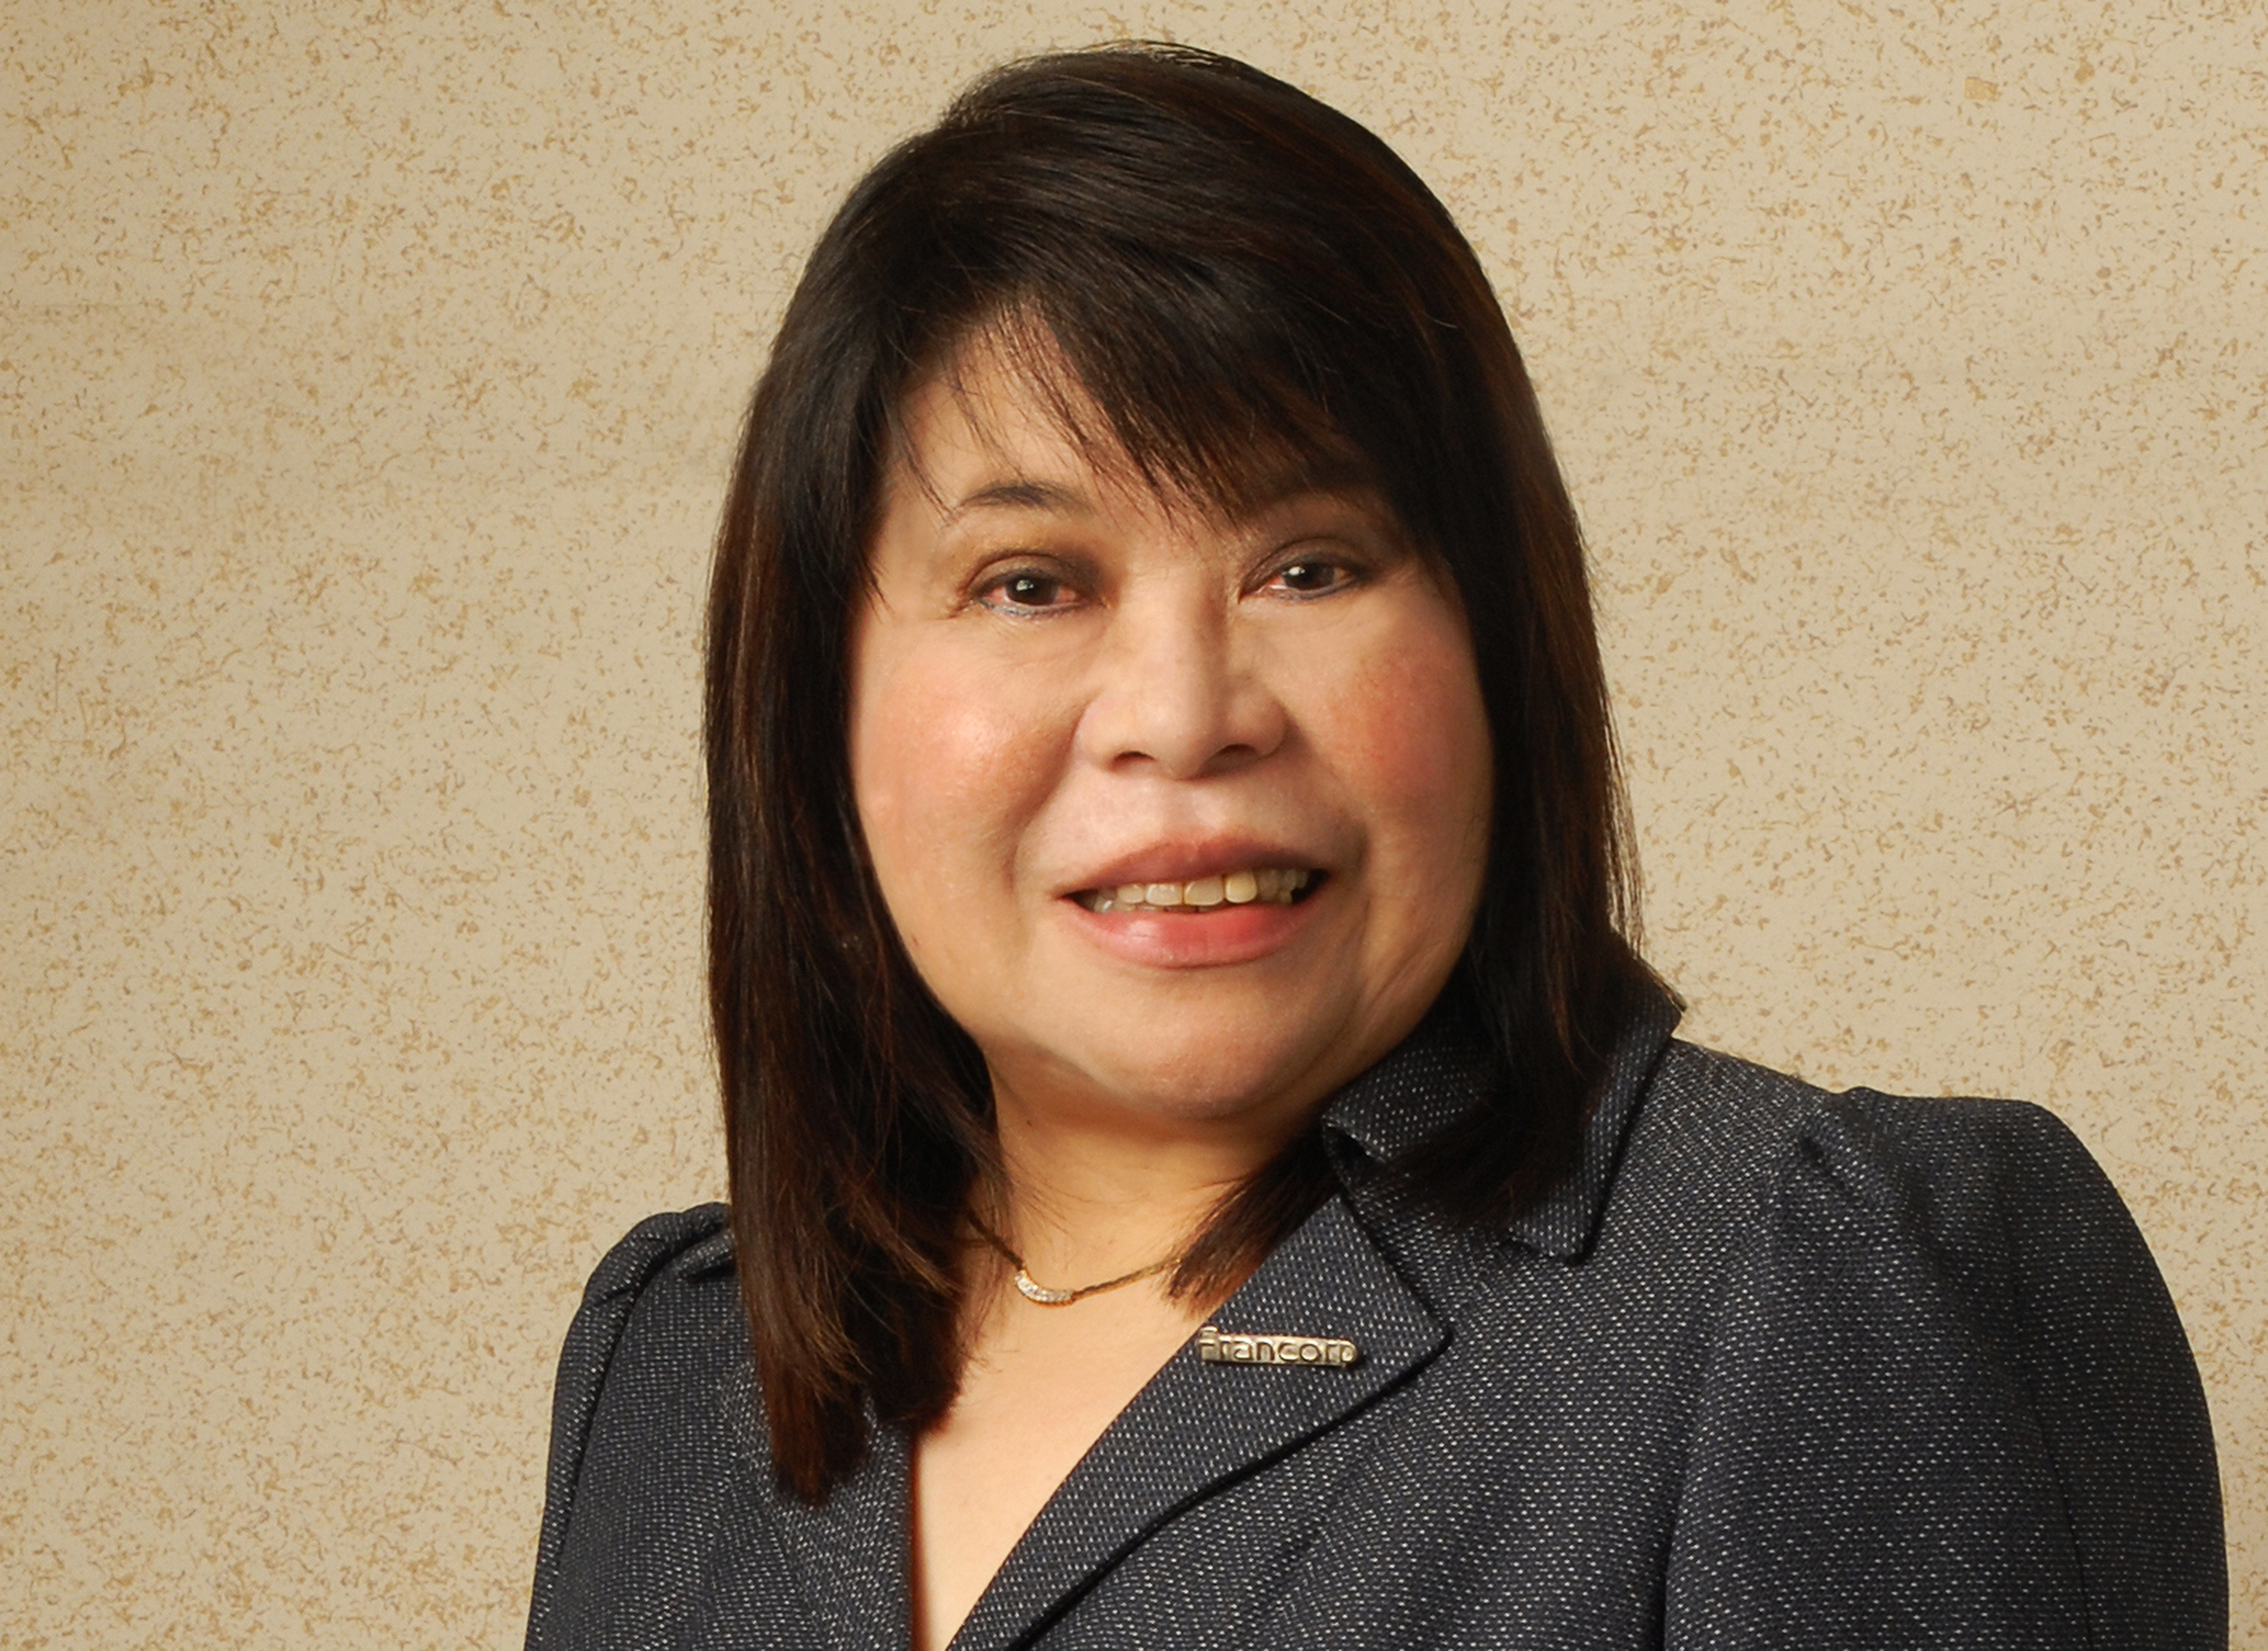 Philippine Chamber Of Commerce Announces Ma AlegriaSibal-Limjoco, CEO, Francorp As 2017 IWEC Awardee